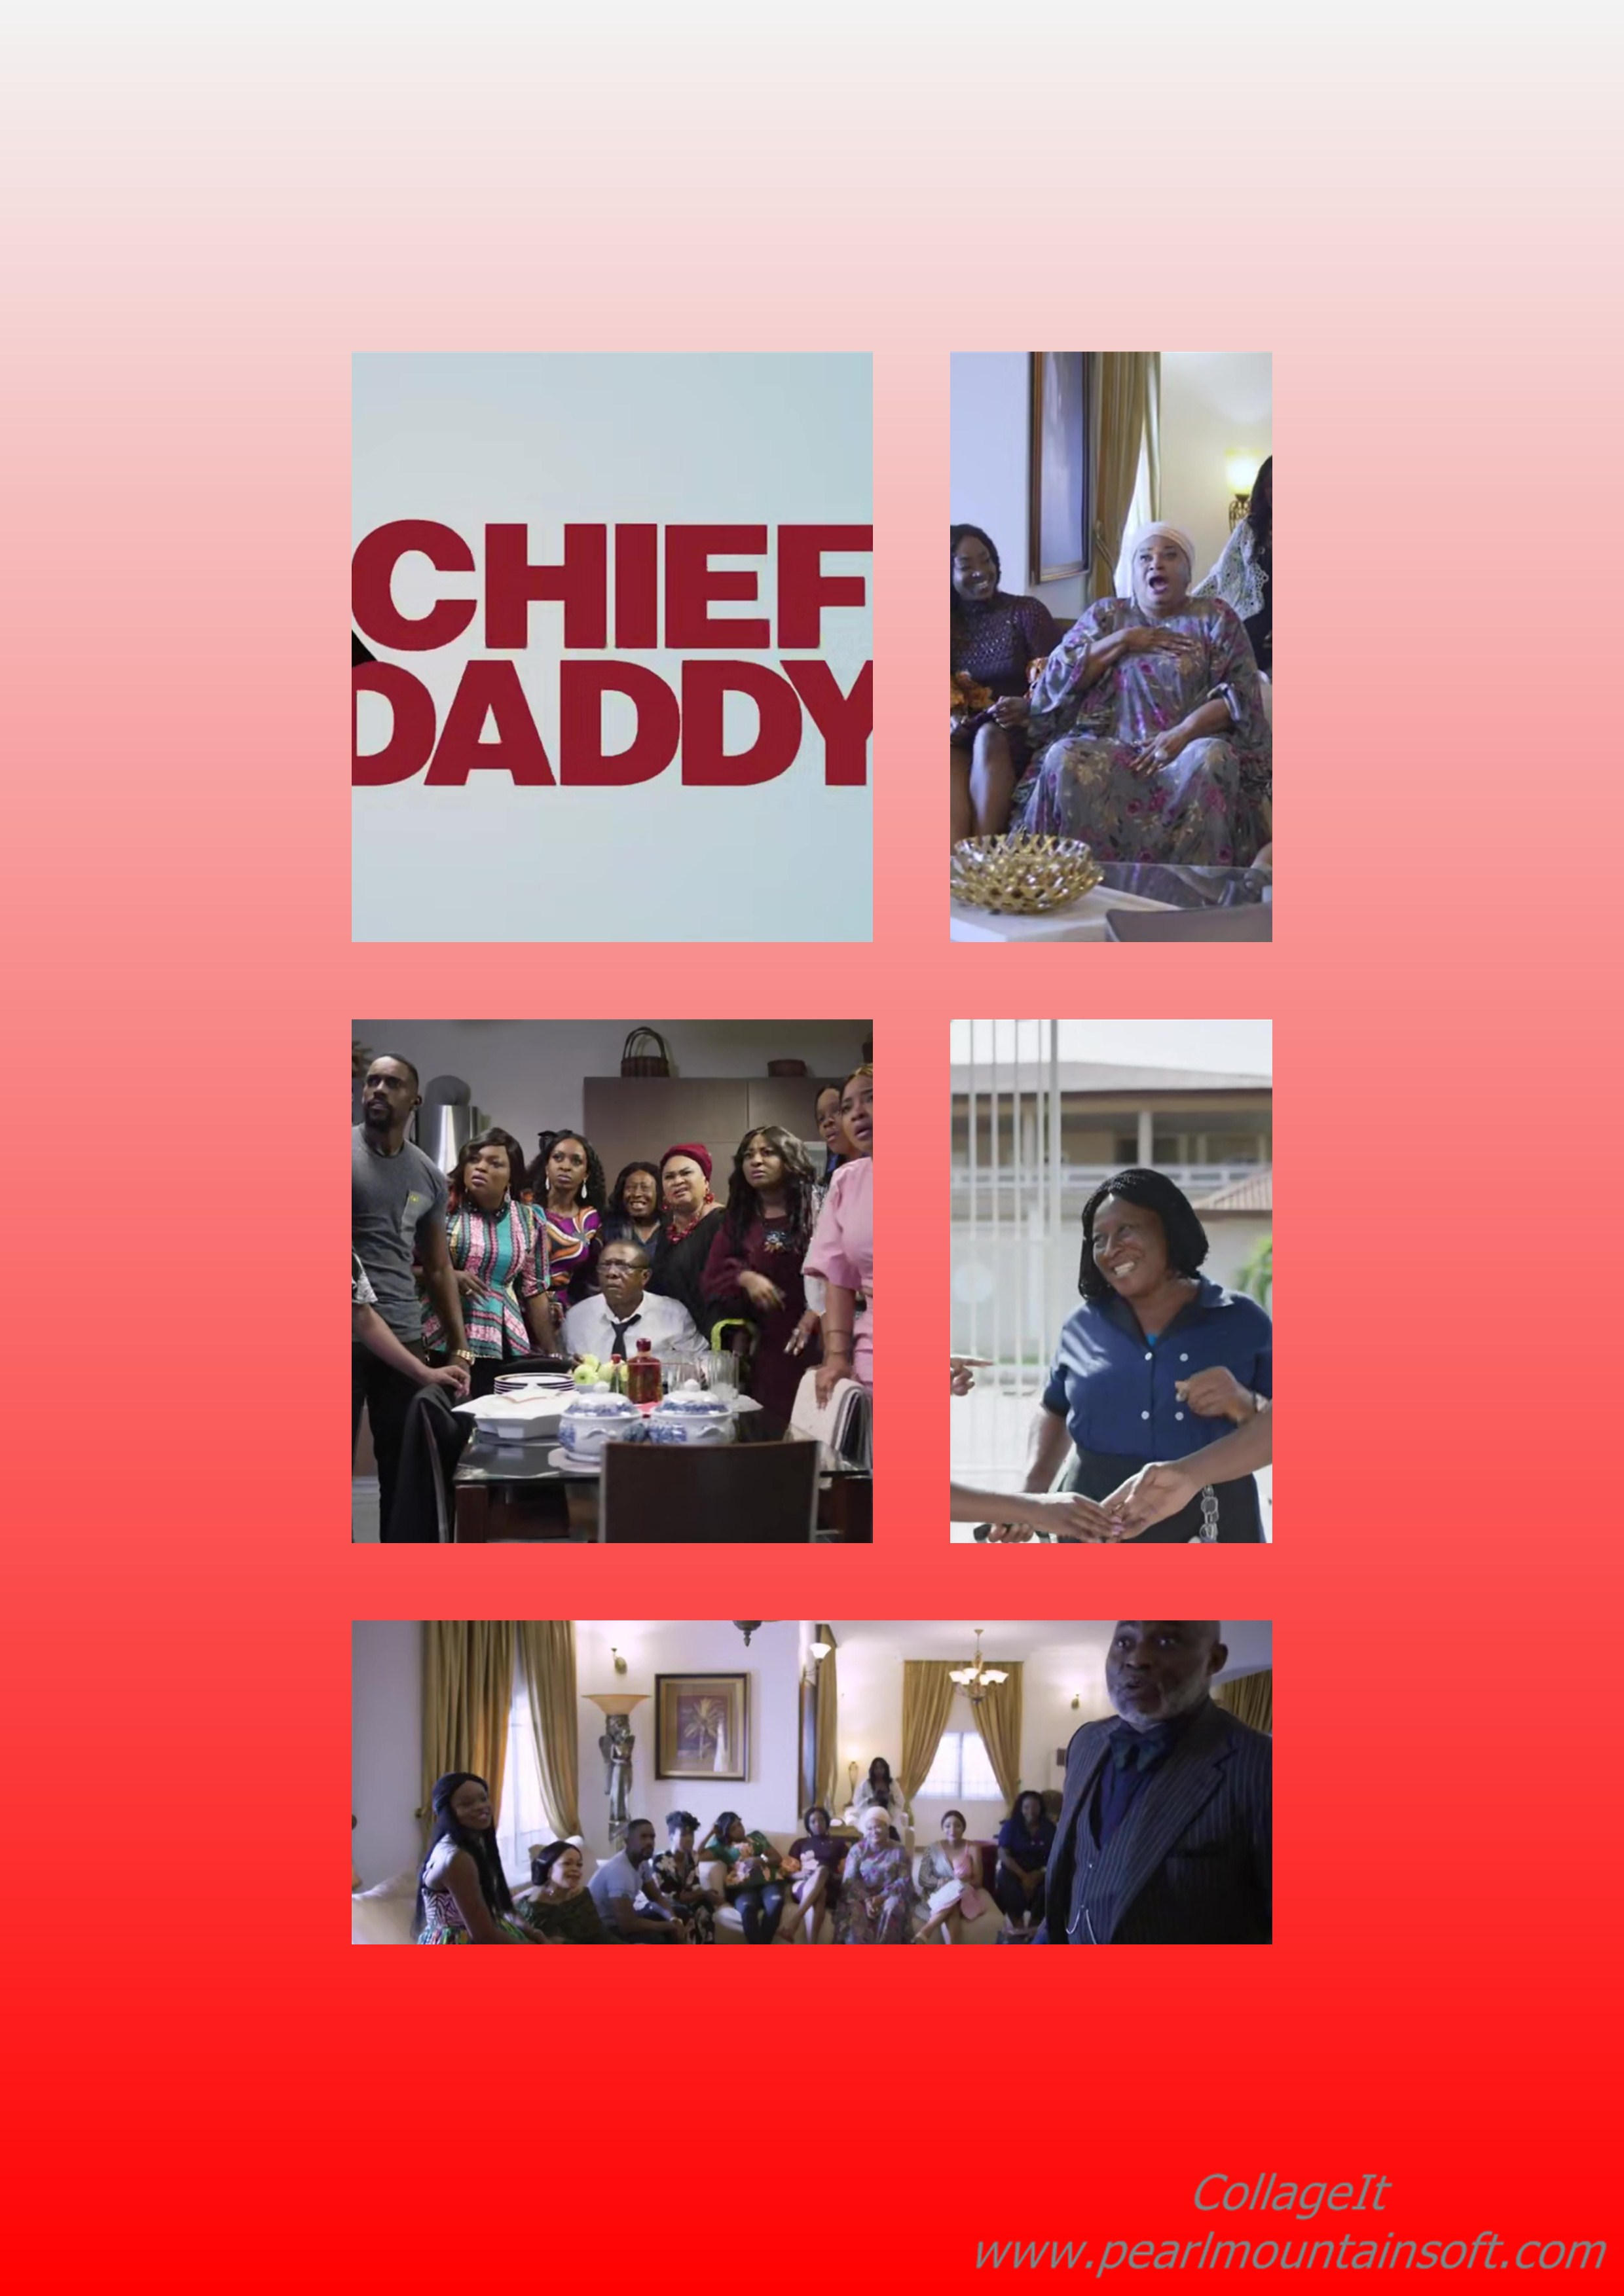 SYNOPSIS TO THE MOVIE: CHIEF DADDY